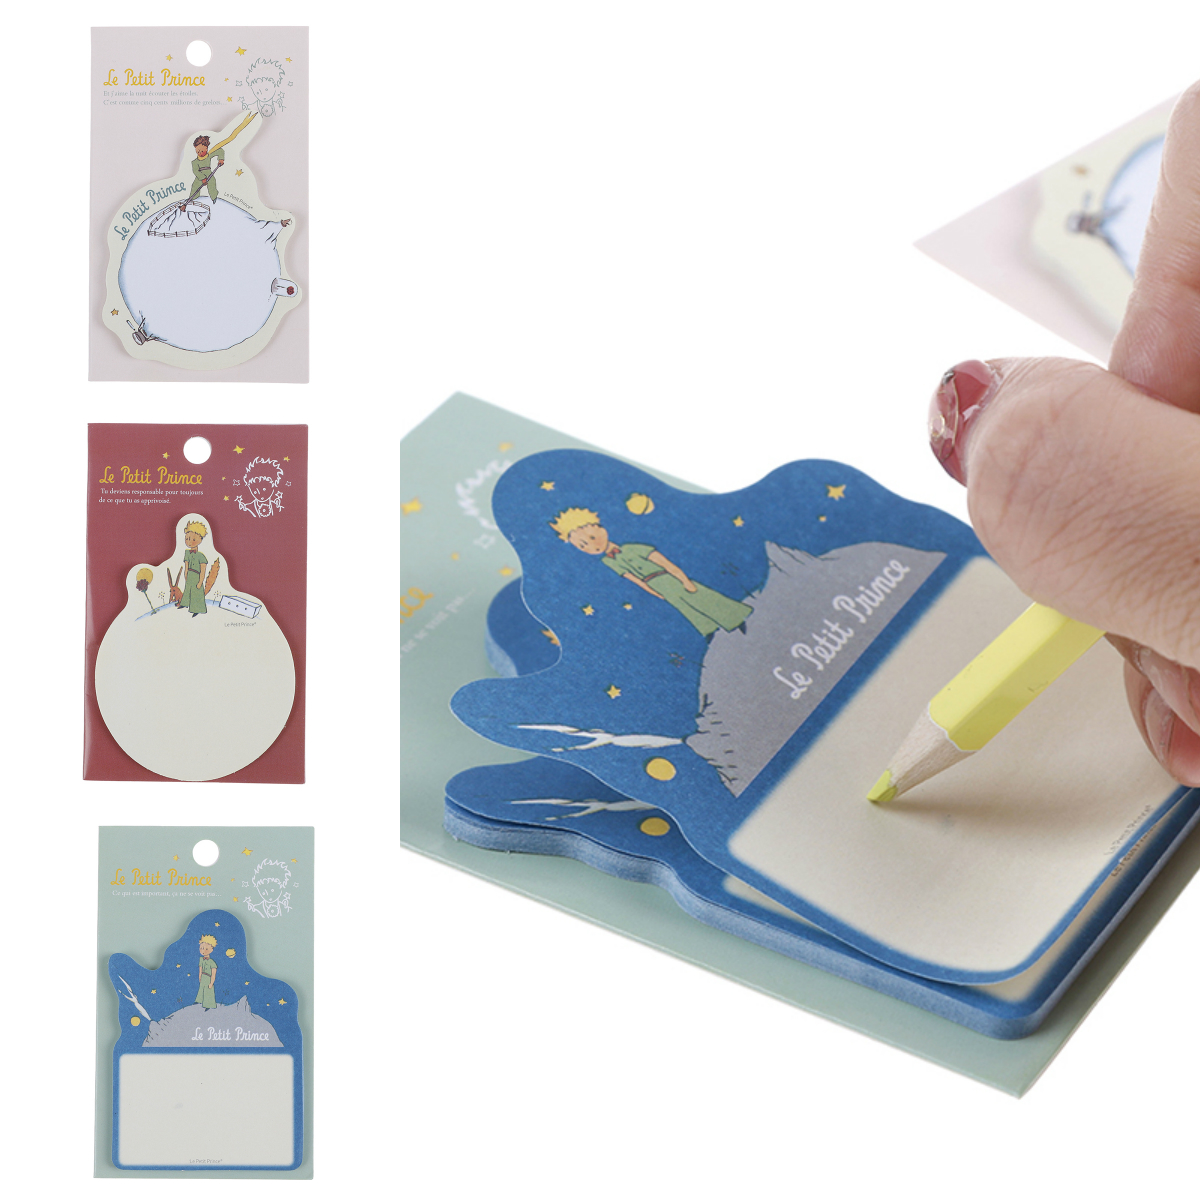 1pcs New Little Prince Memo Sticker Paper Sticky Note Fair Tale Card Self-Adhesive Bookmark Office School Supplies